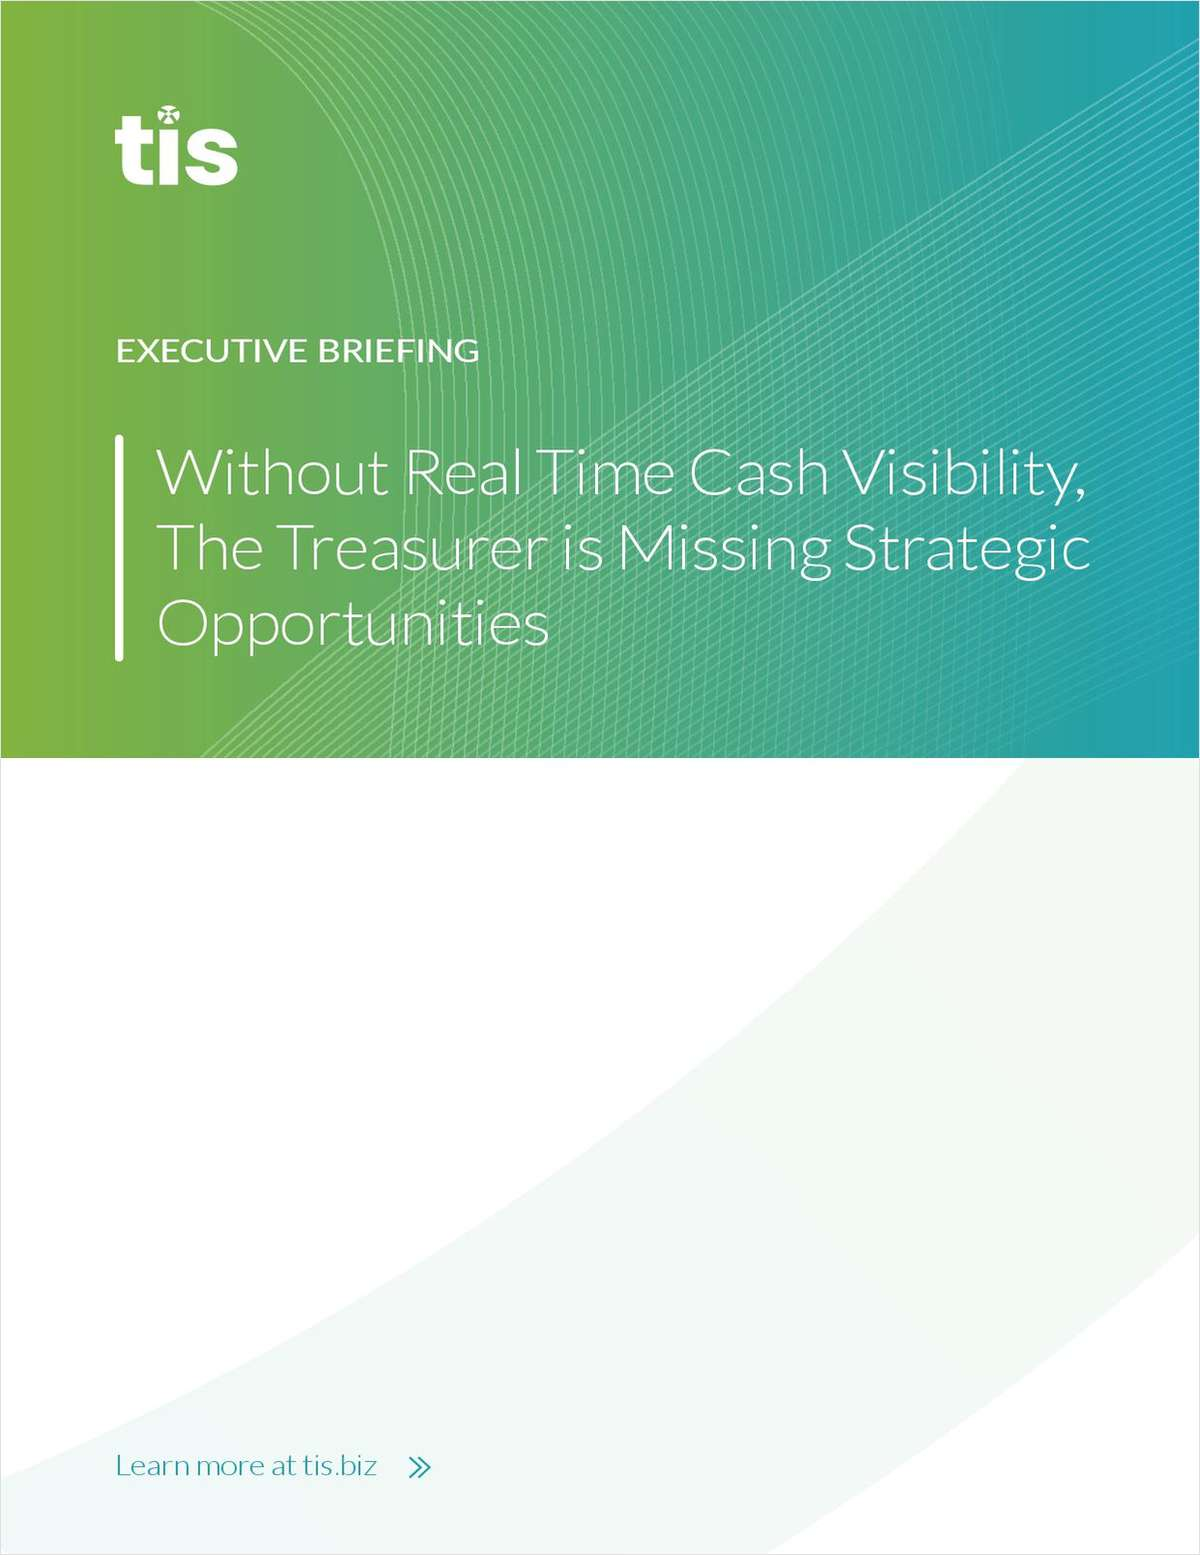 Without Real Time Cash Visibility, the Treasurer Is Missing Strategic Opportunities